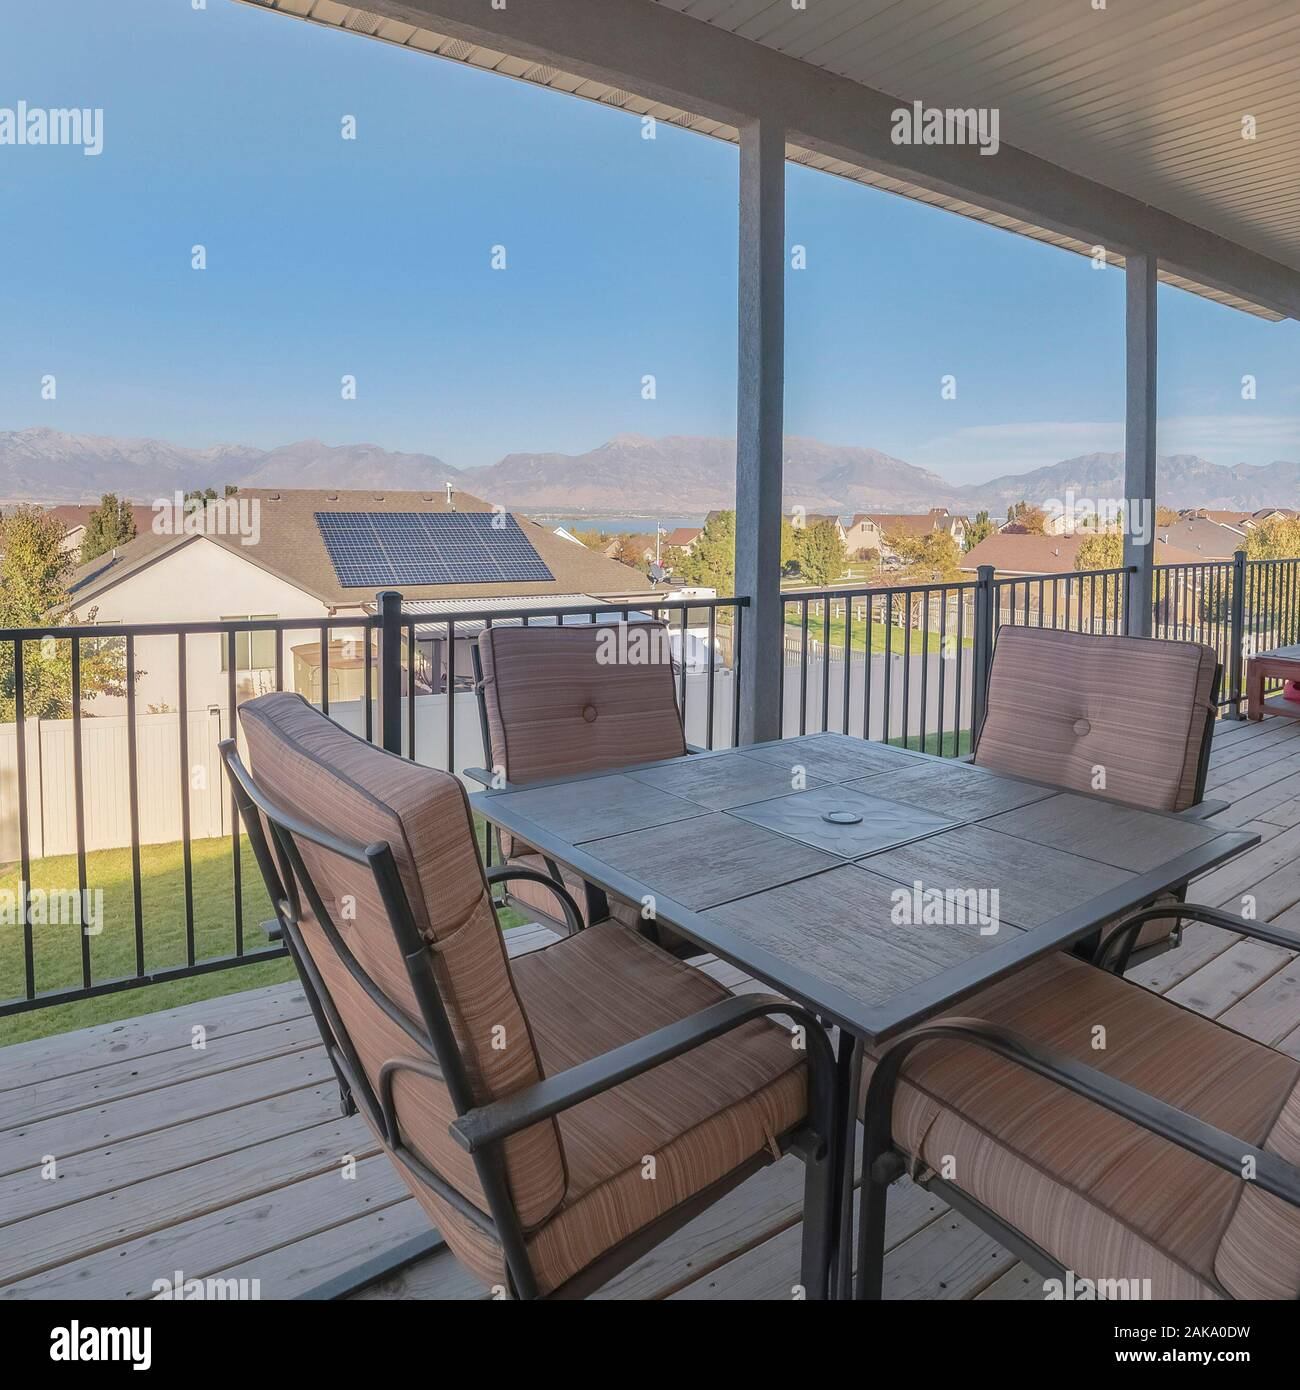 Square Outdoor Dining Furniture On A Covered Patio Stock Photo Alamy